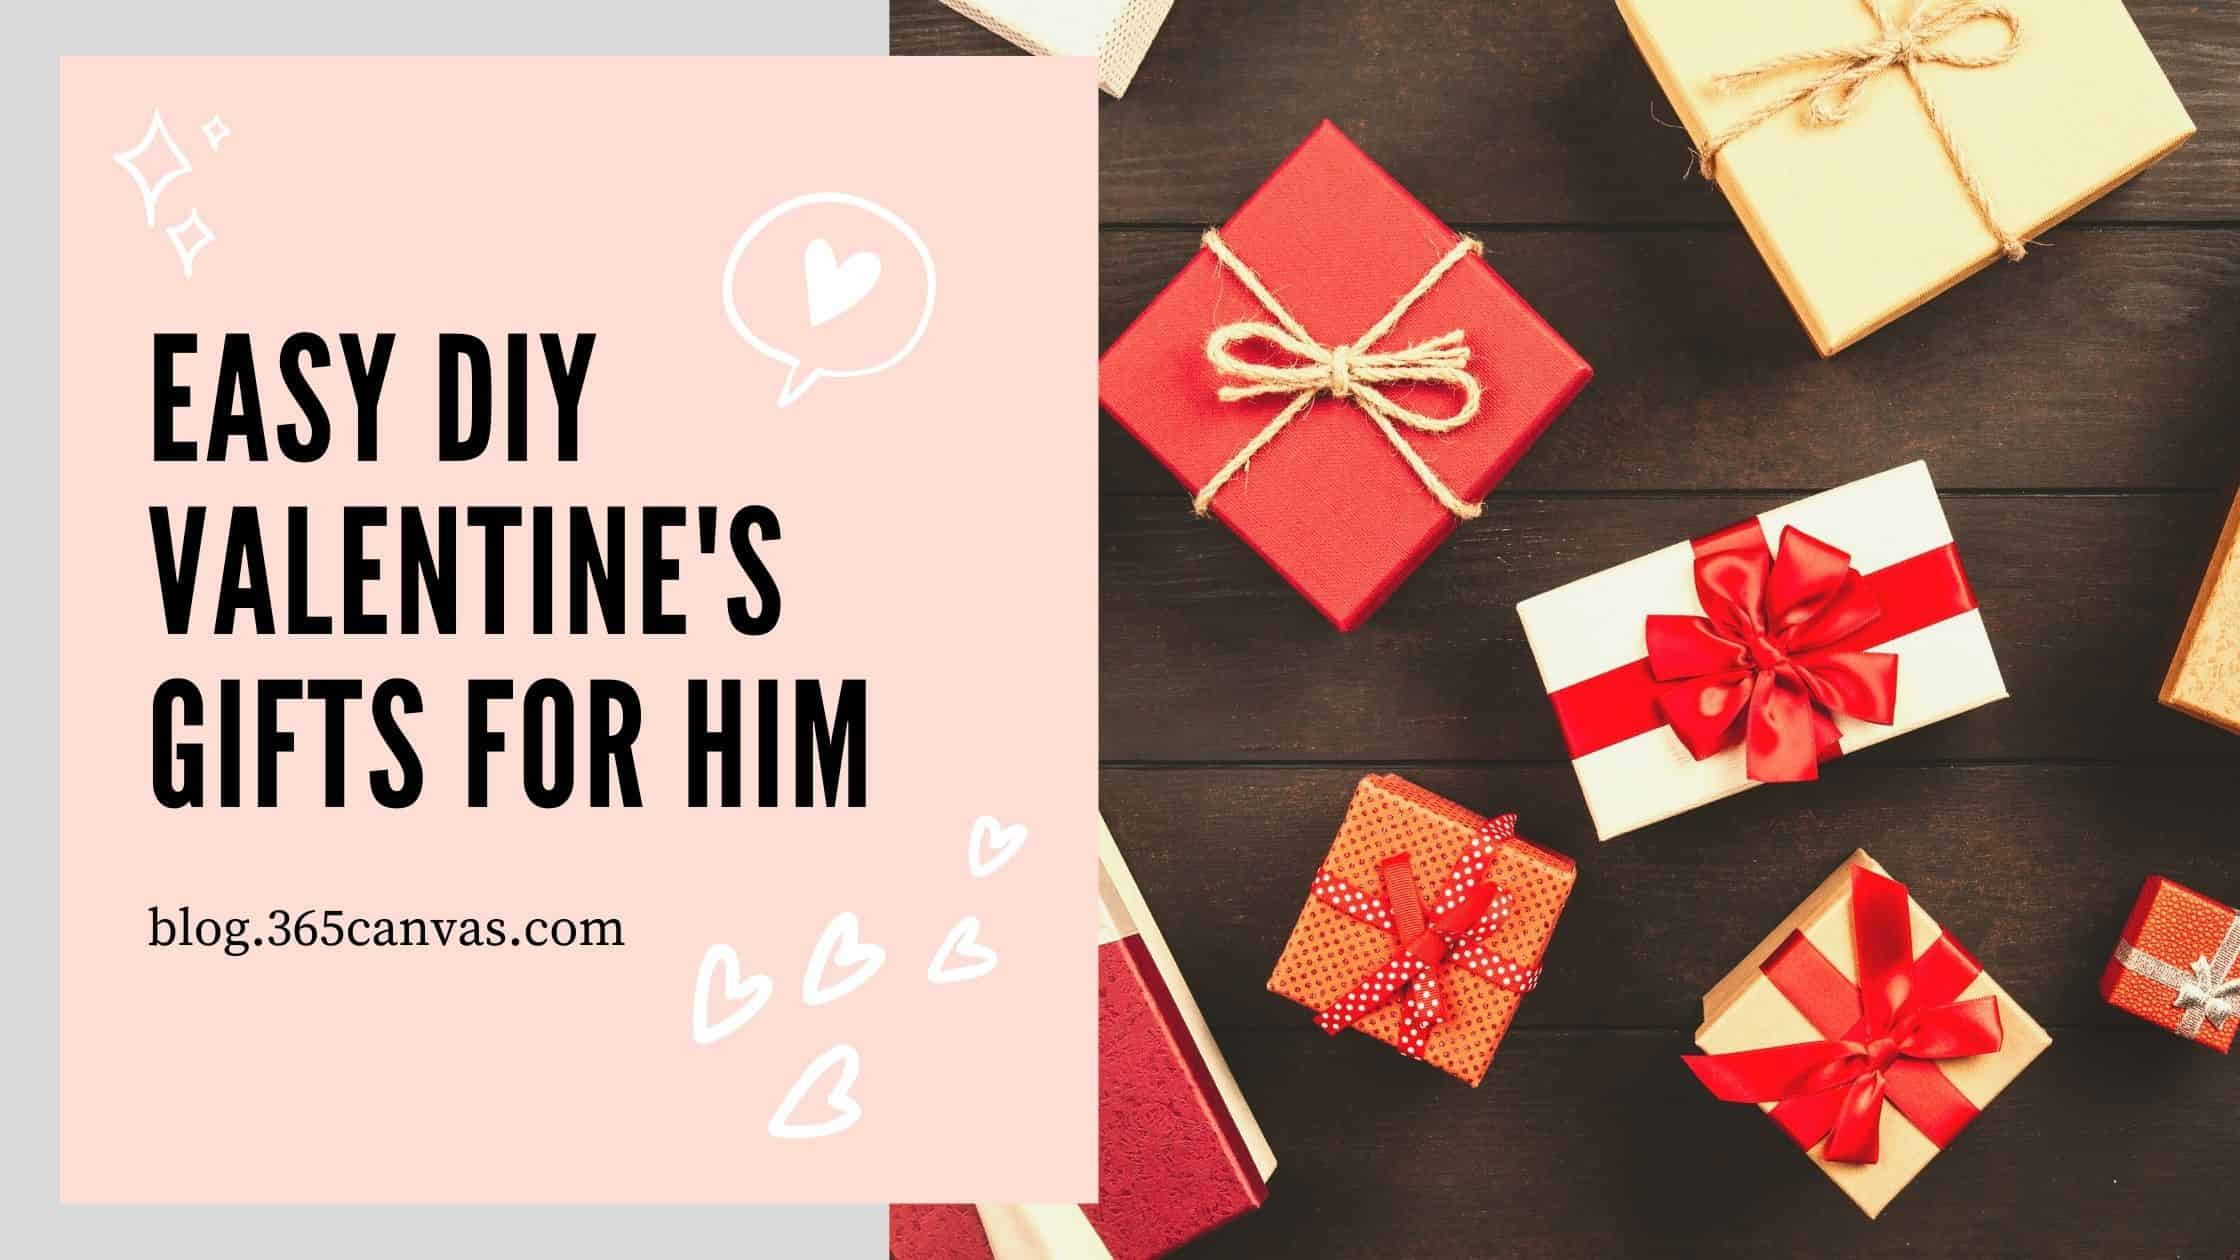 35 Easiest DIY Valentine's Day Gifts for Him (2021)